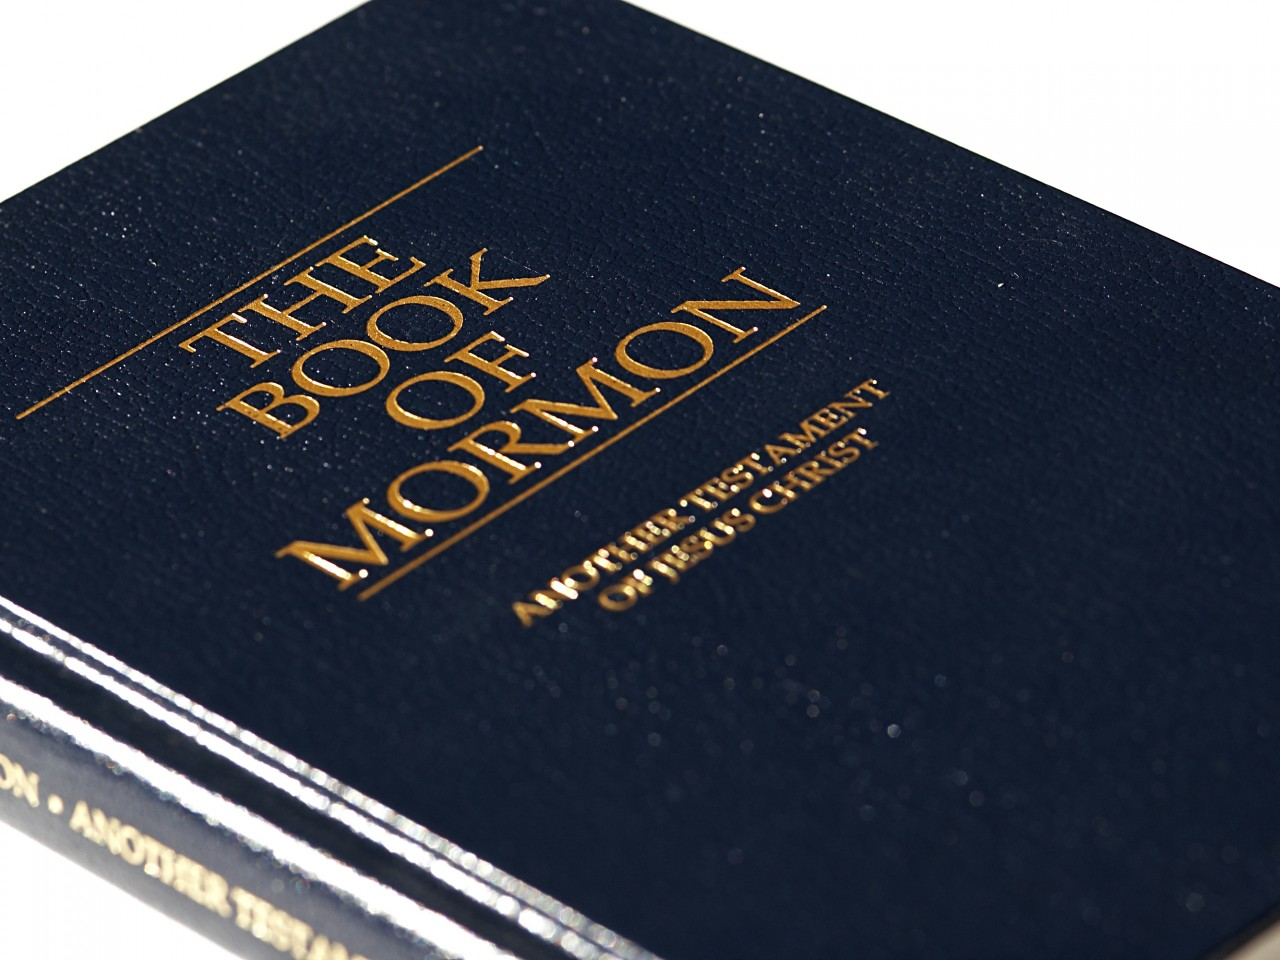 Church Buys Printer's Manuscript of Book of Mormon for $35 million from the Community of Christ Church